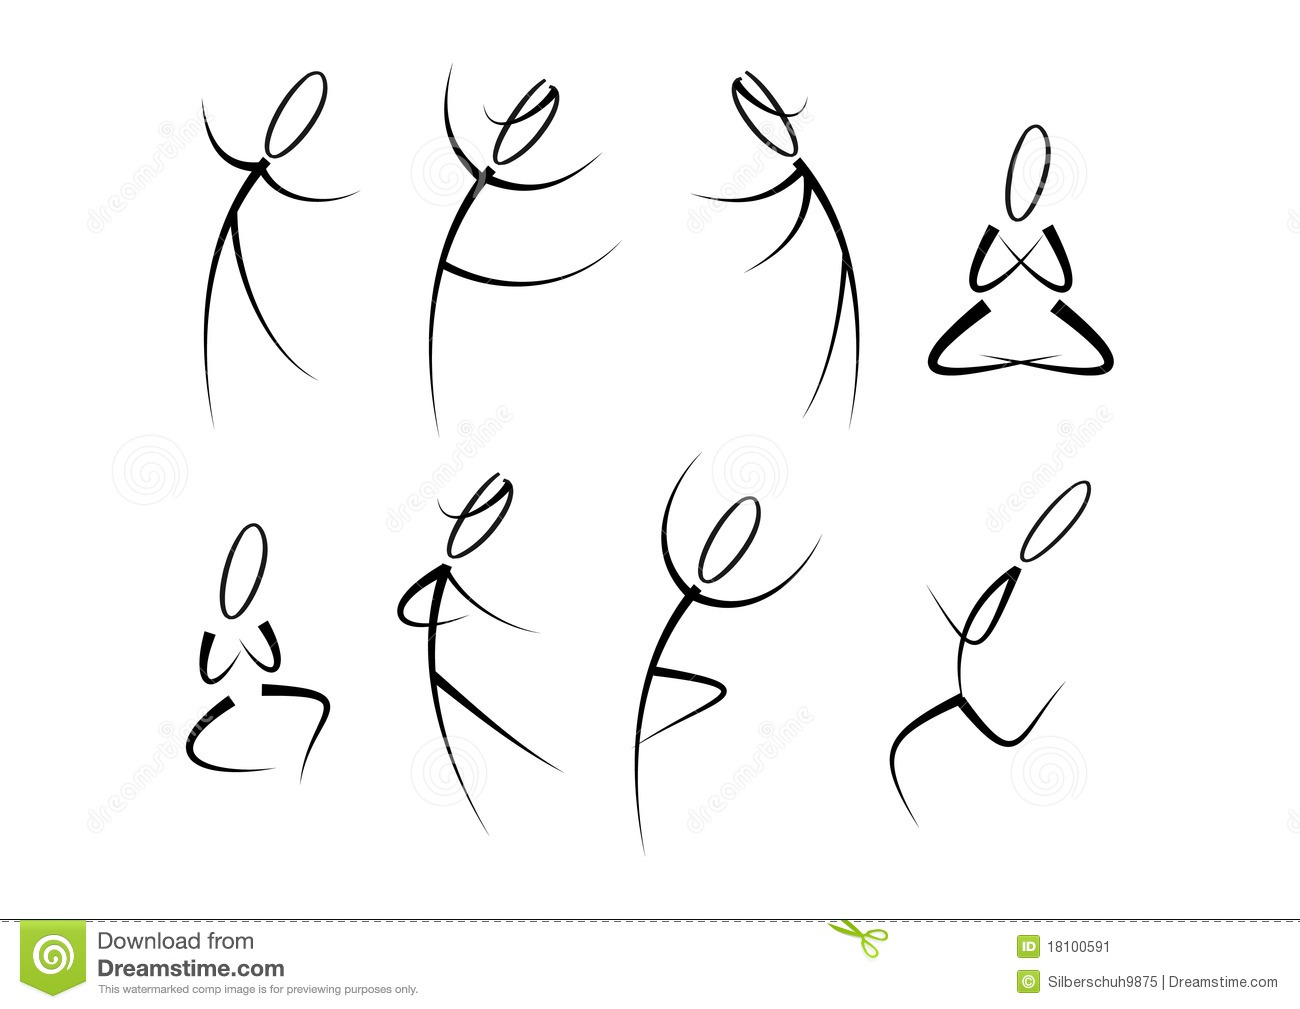 People in movement (fitness, sports, yoga, ...)